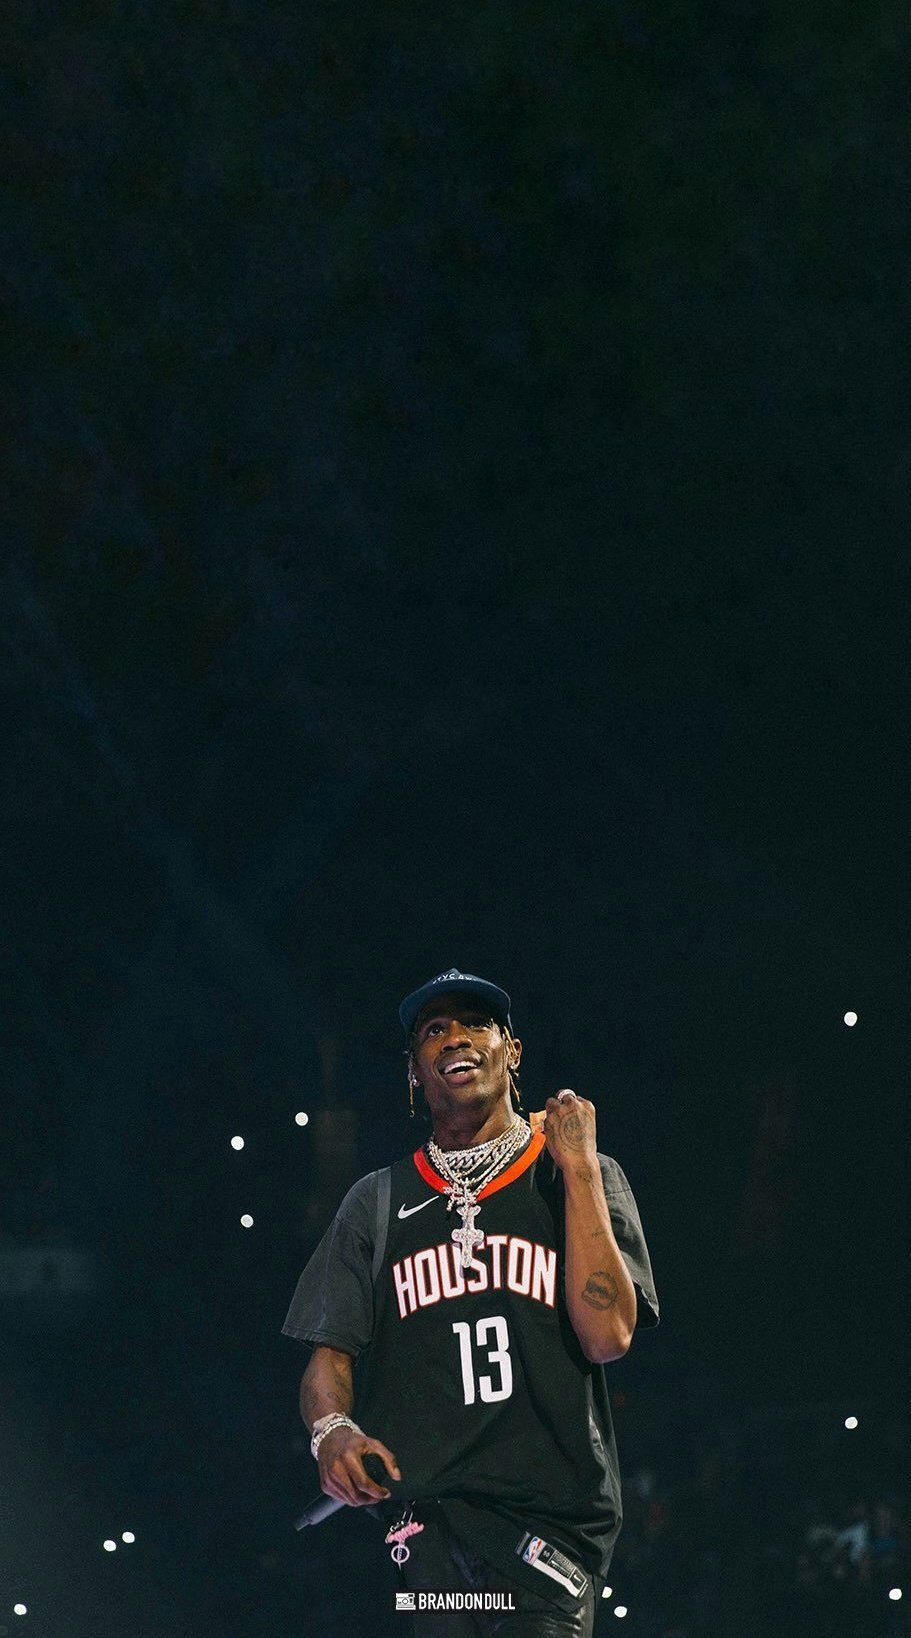 travis scott iphone wallpaper Travis scott iphone wallpaper